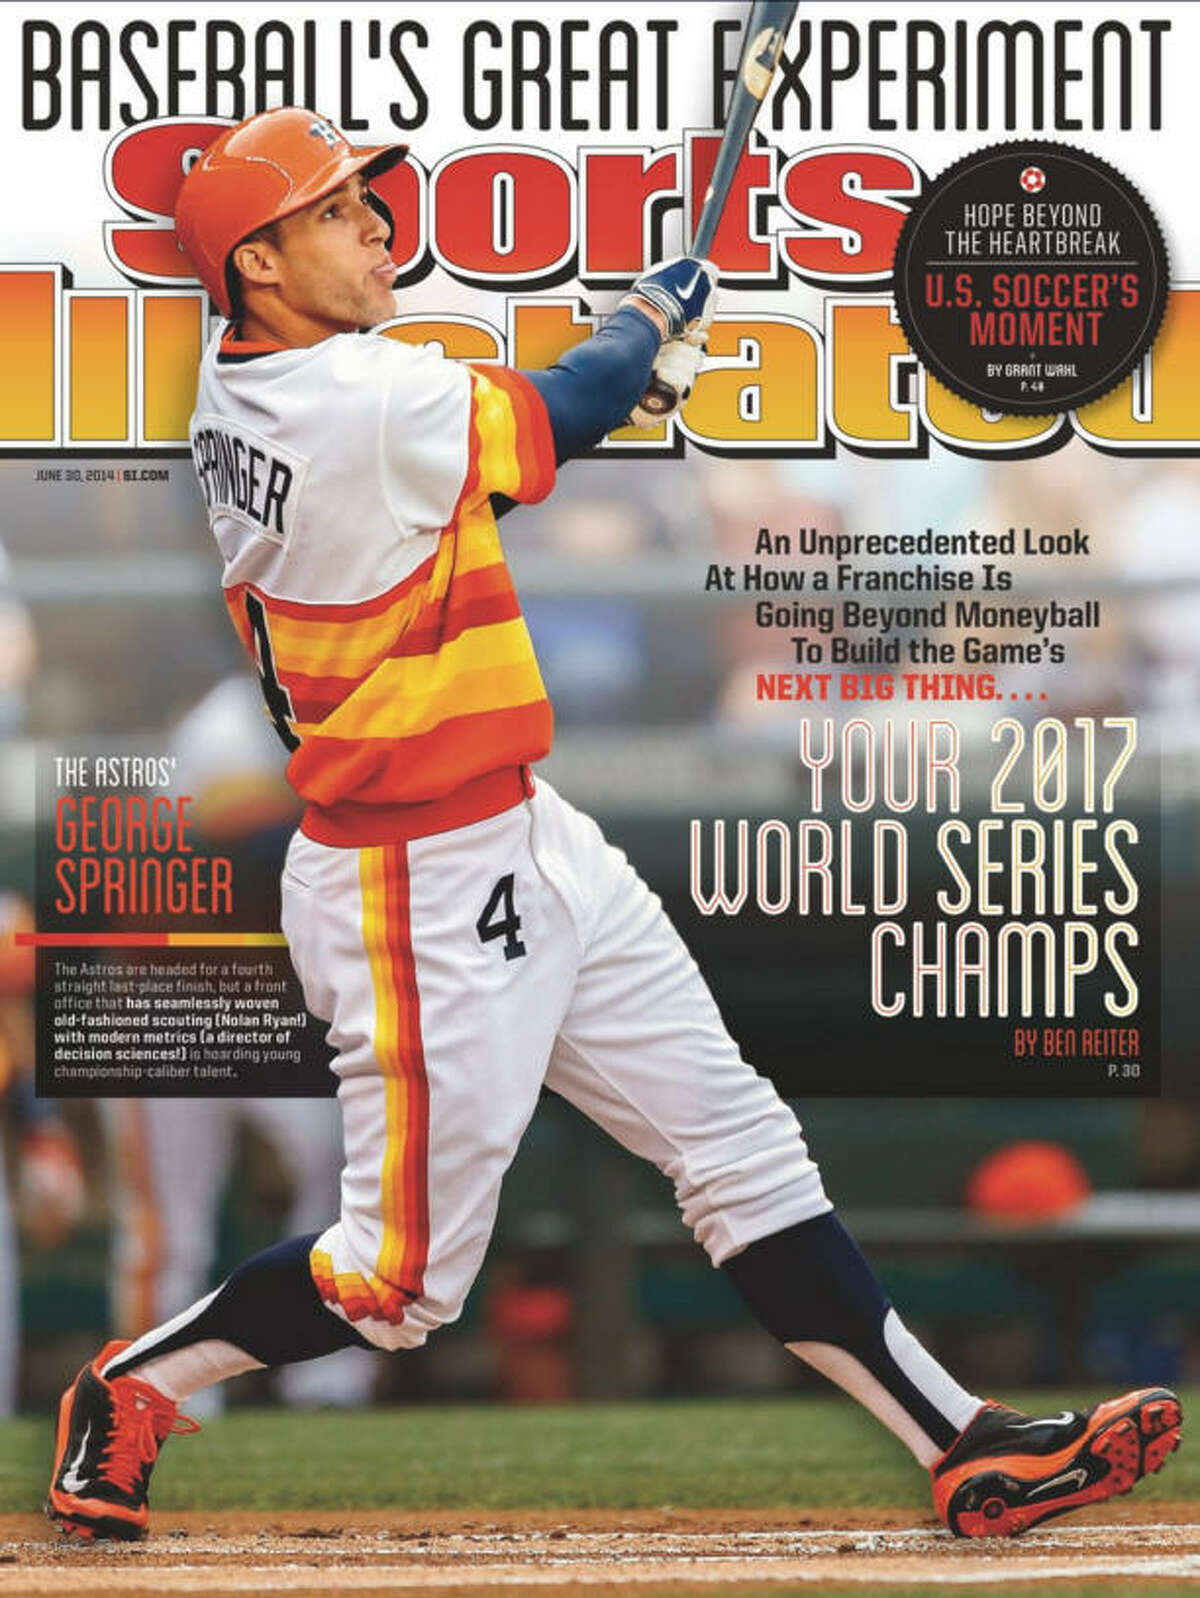 PHOTOS: What that 2014 Sports Illustrated cover got wrong Sports Illustrated is looking pretty smart for this cover story back in 2014 that predicted the Astros would win the World Series in 2017. Browse through the photos above to see what that article got wrong about these Astros.